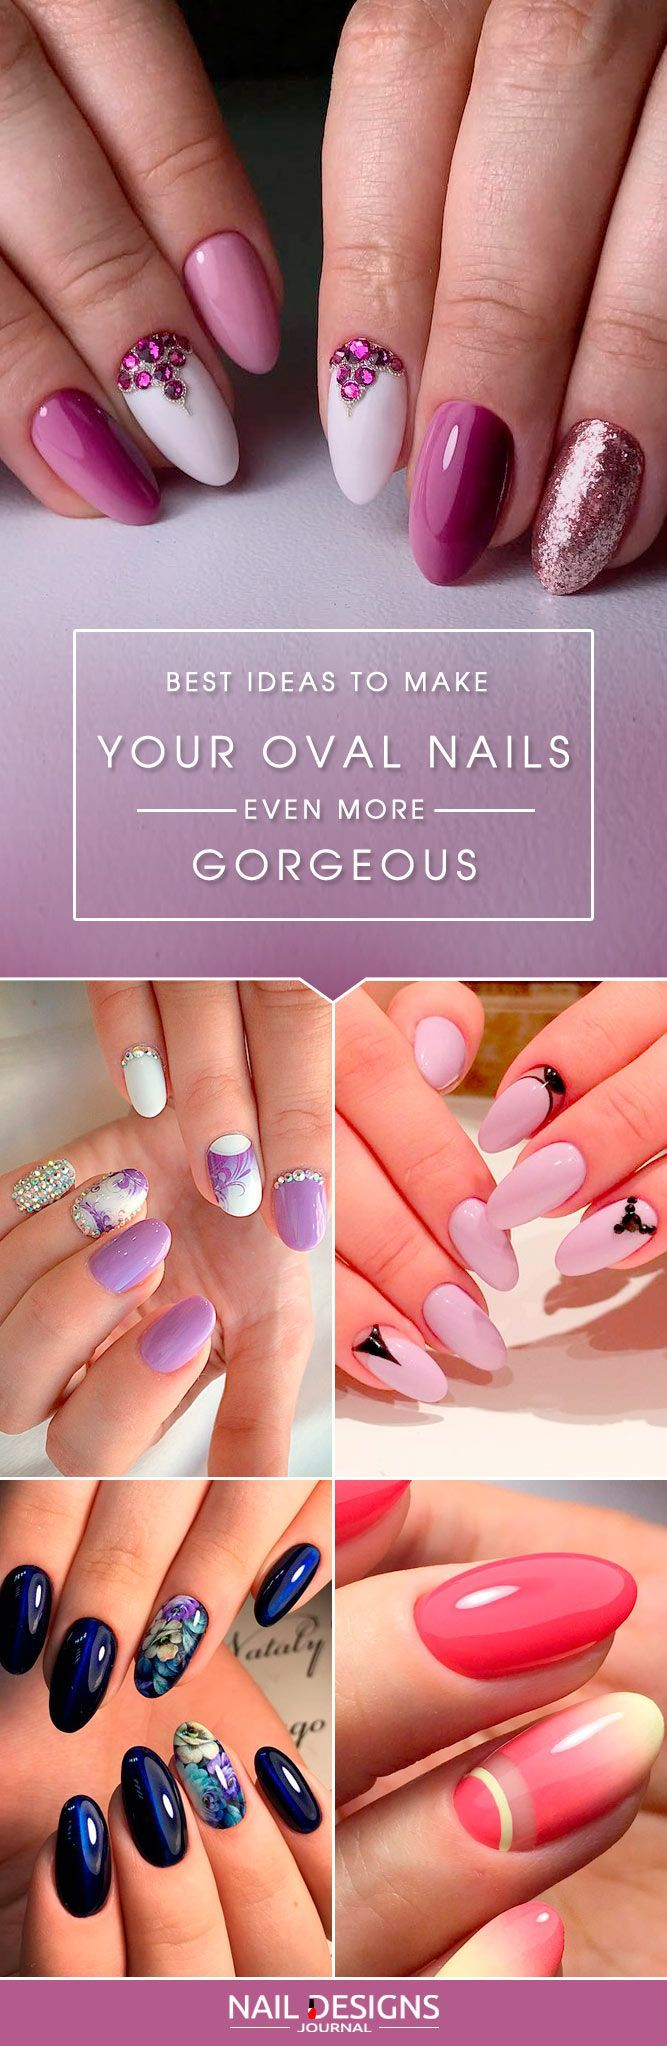 Oval nails always look great and charming. That's why so many women choose it.